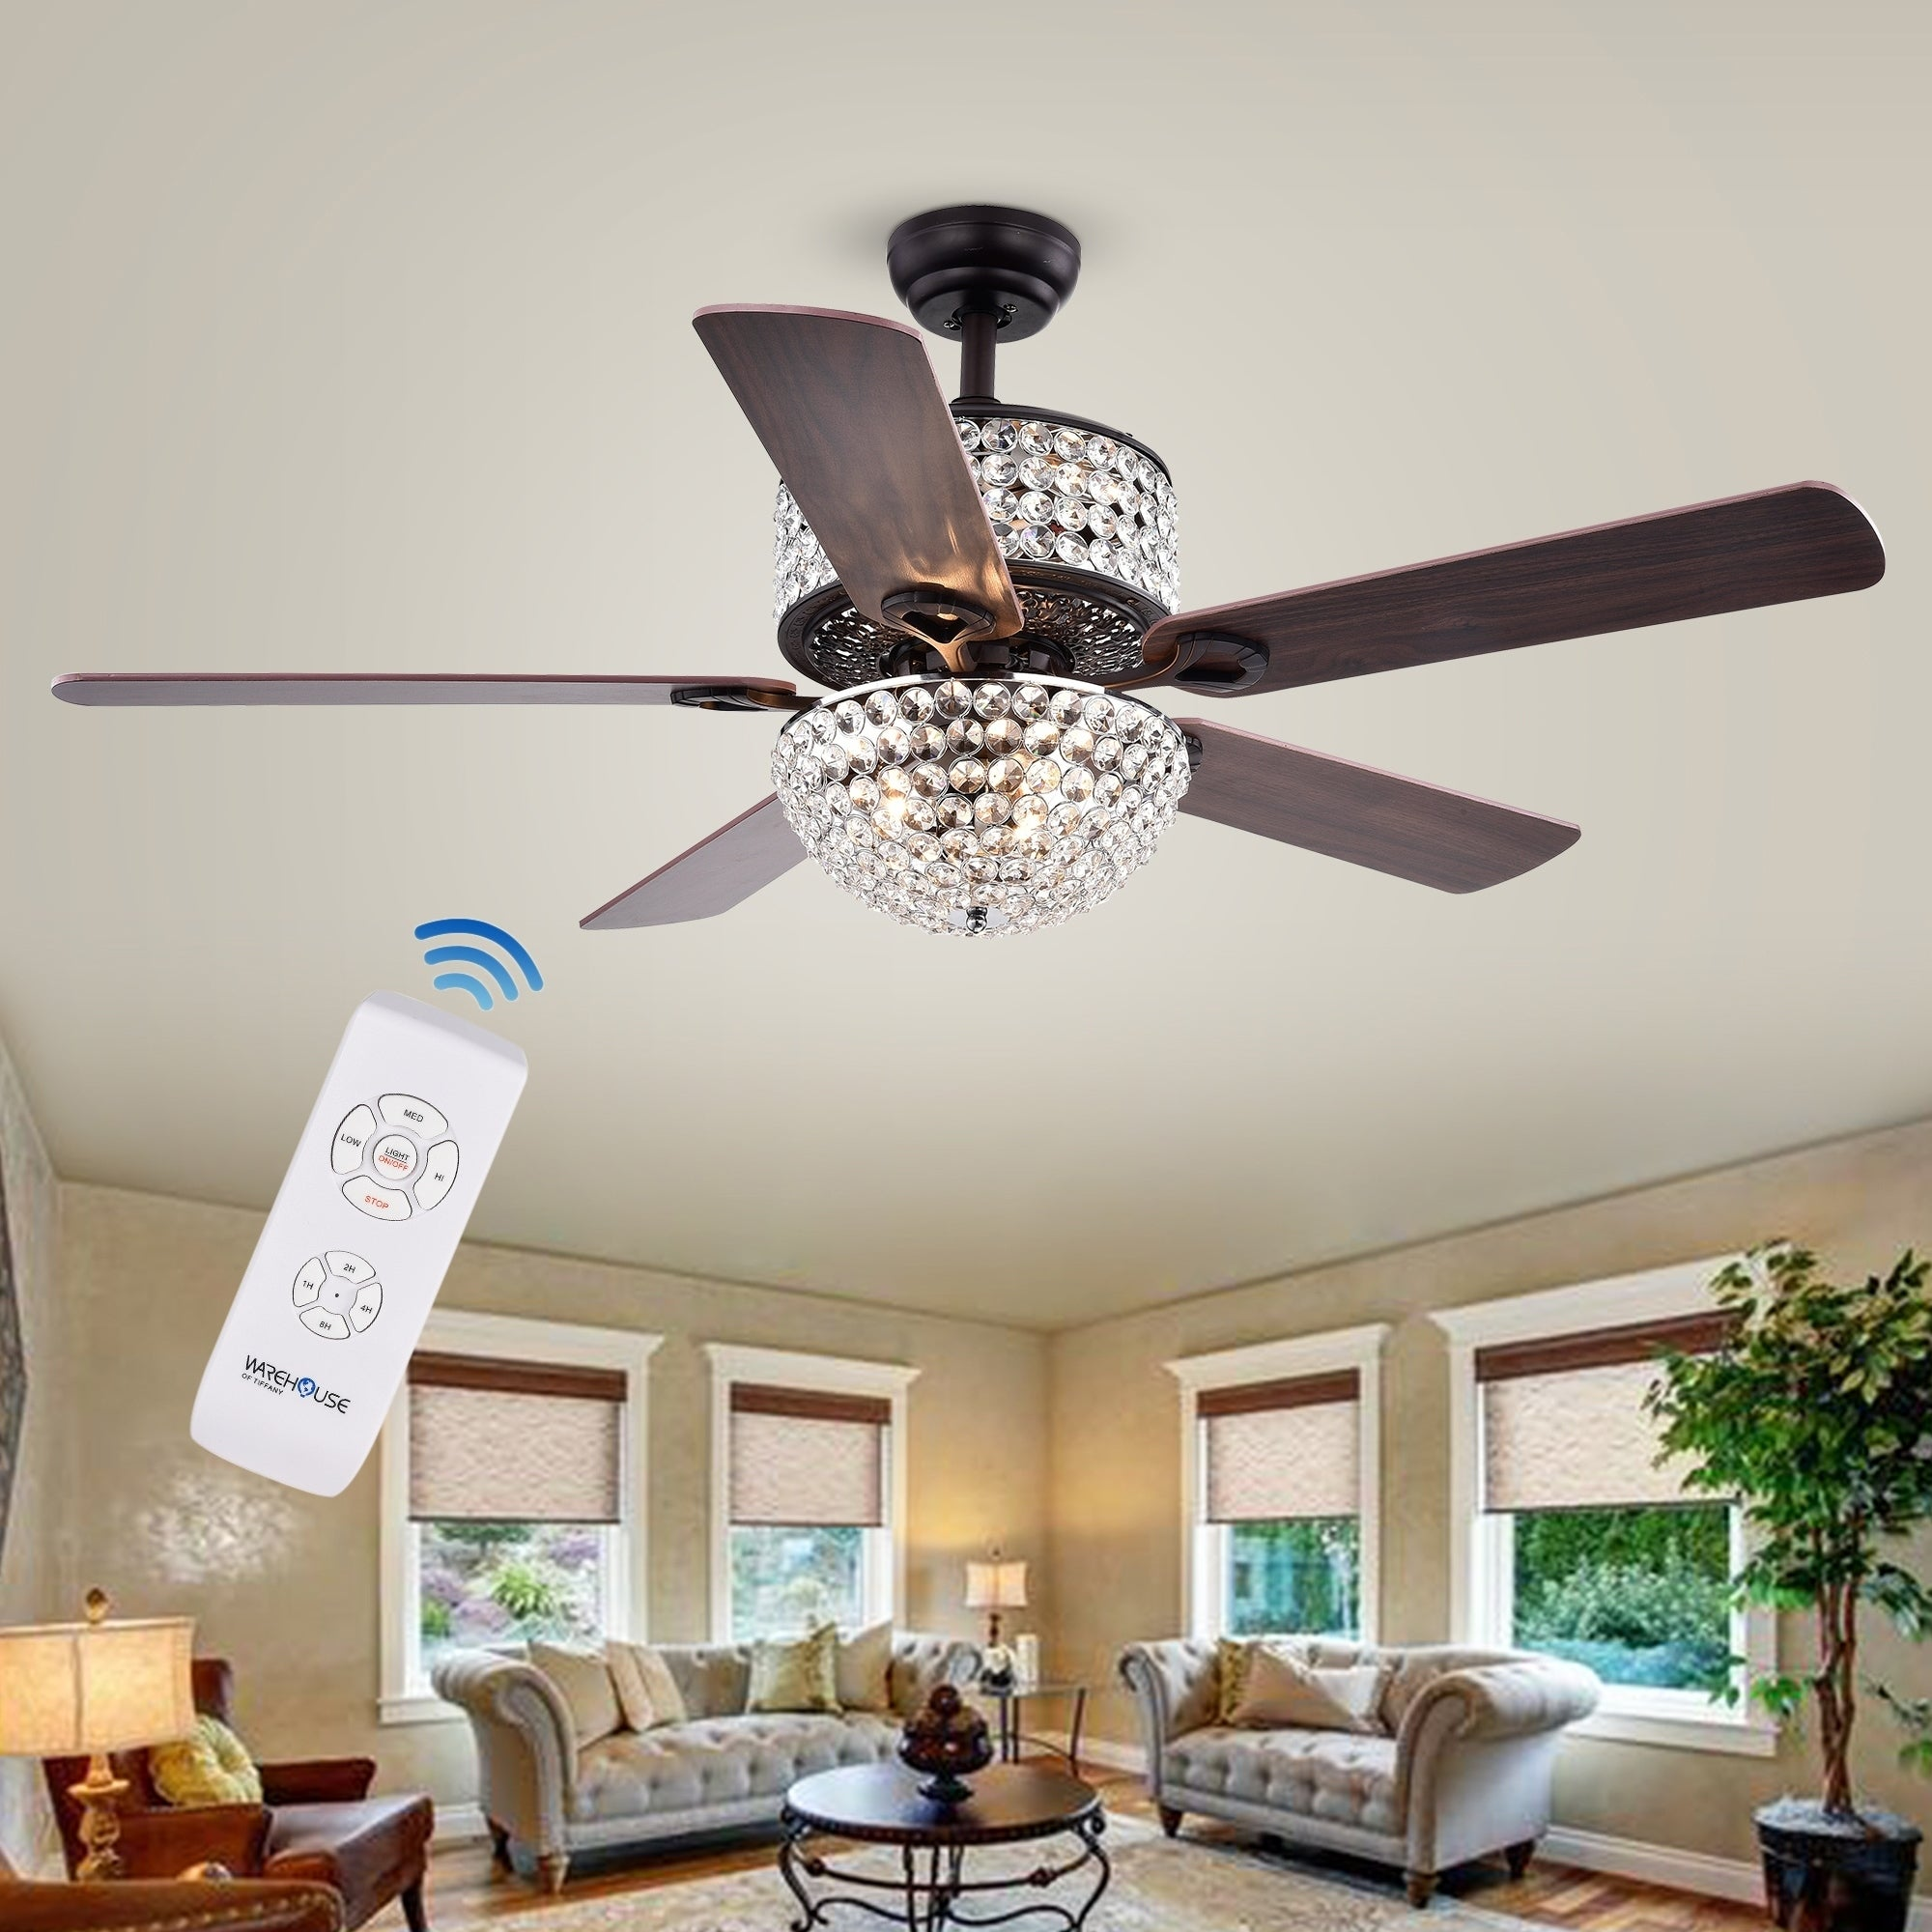 Shop Laure Crystal 6 Light Crystal 5 Blade 52 Inch Ceiling Fan (Optional  Remote)   Free Shipping Today   Overstock.com   13331001